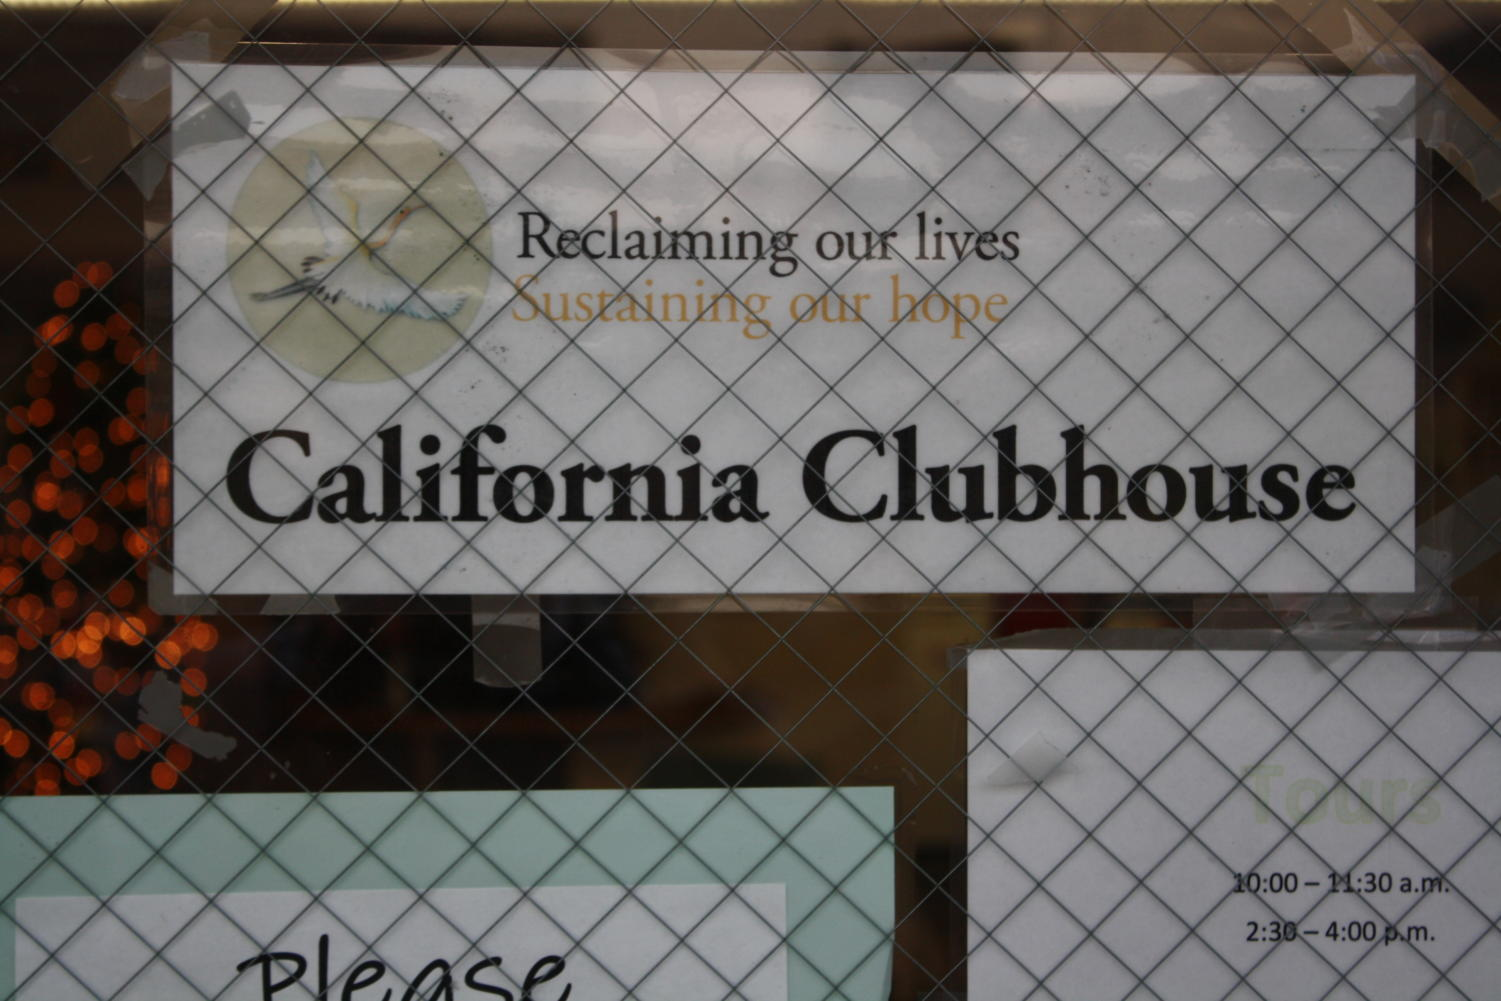 California Clubhouse in San Carlos. The nonprofit organization is the only one like it in San Mateo County.